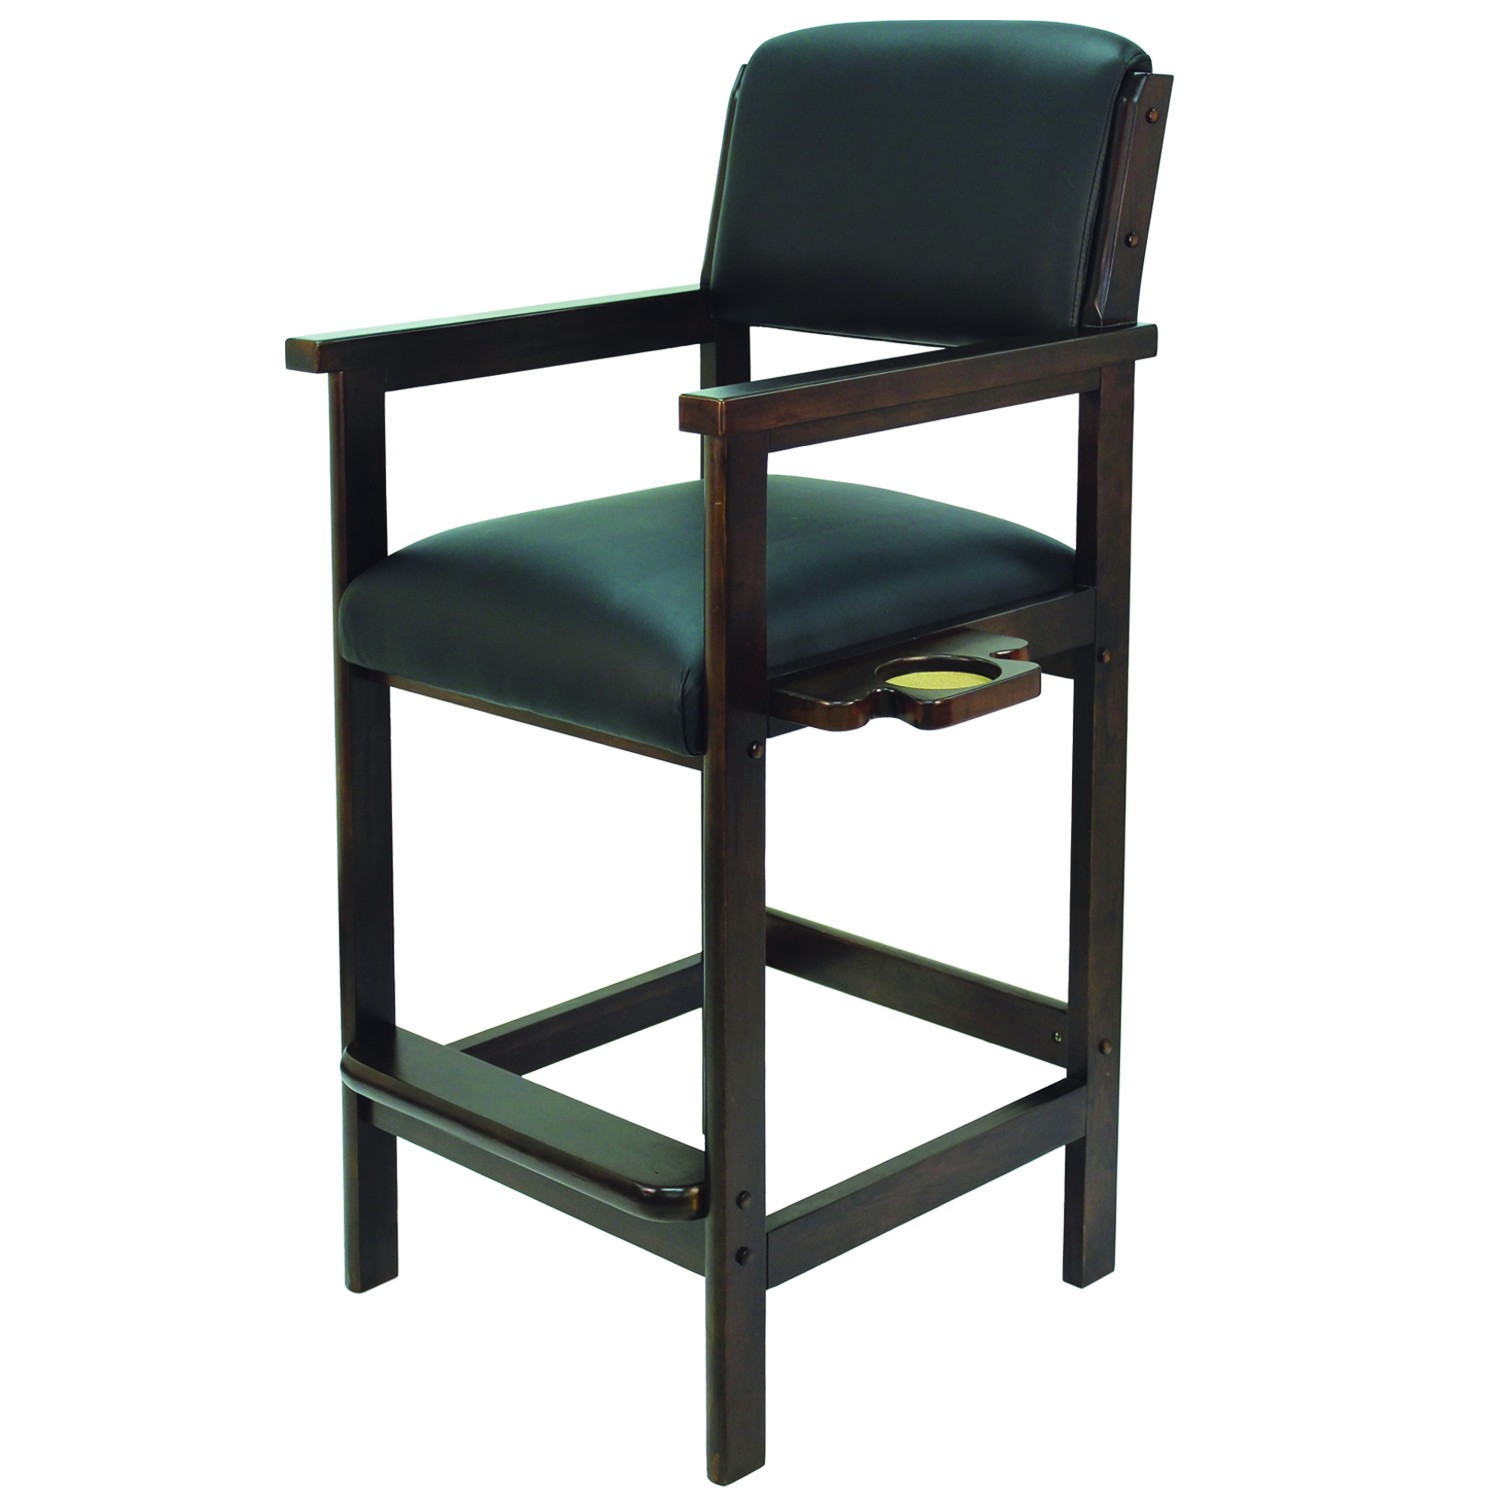 Tabouret-Chaise Spectateur Cappuccino